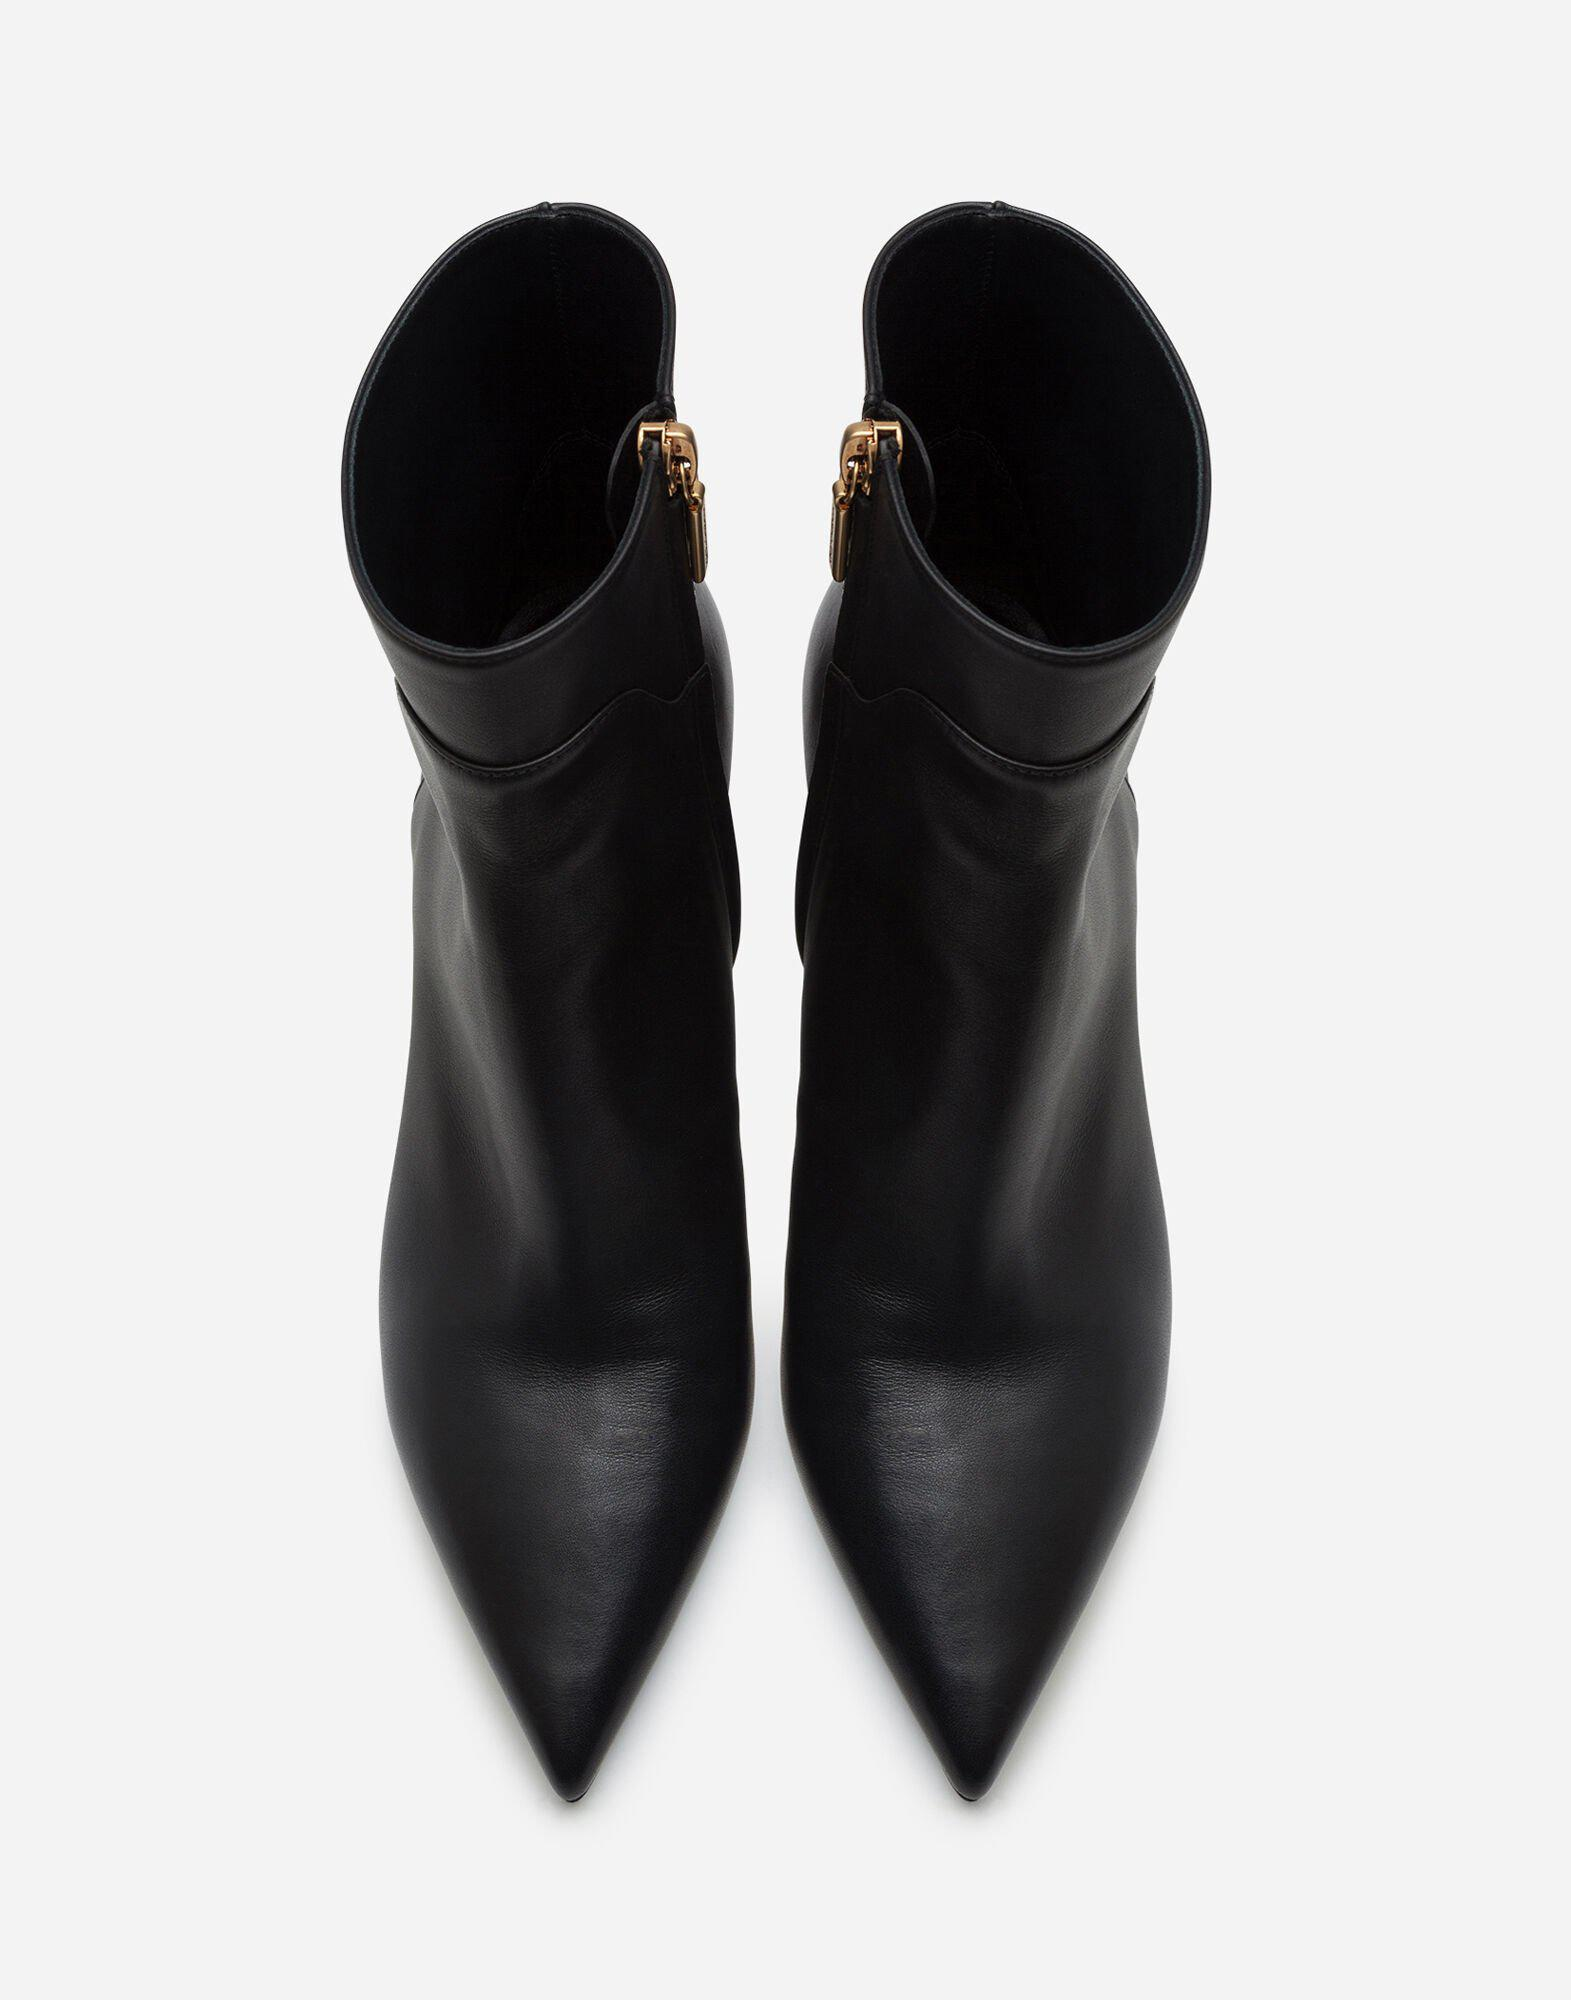 Calfskin ankle boots with DG logo 3